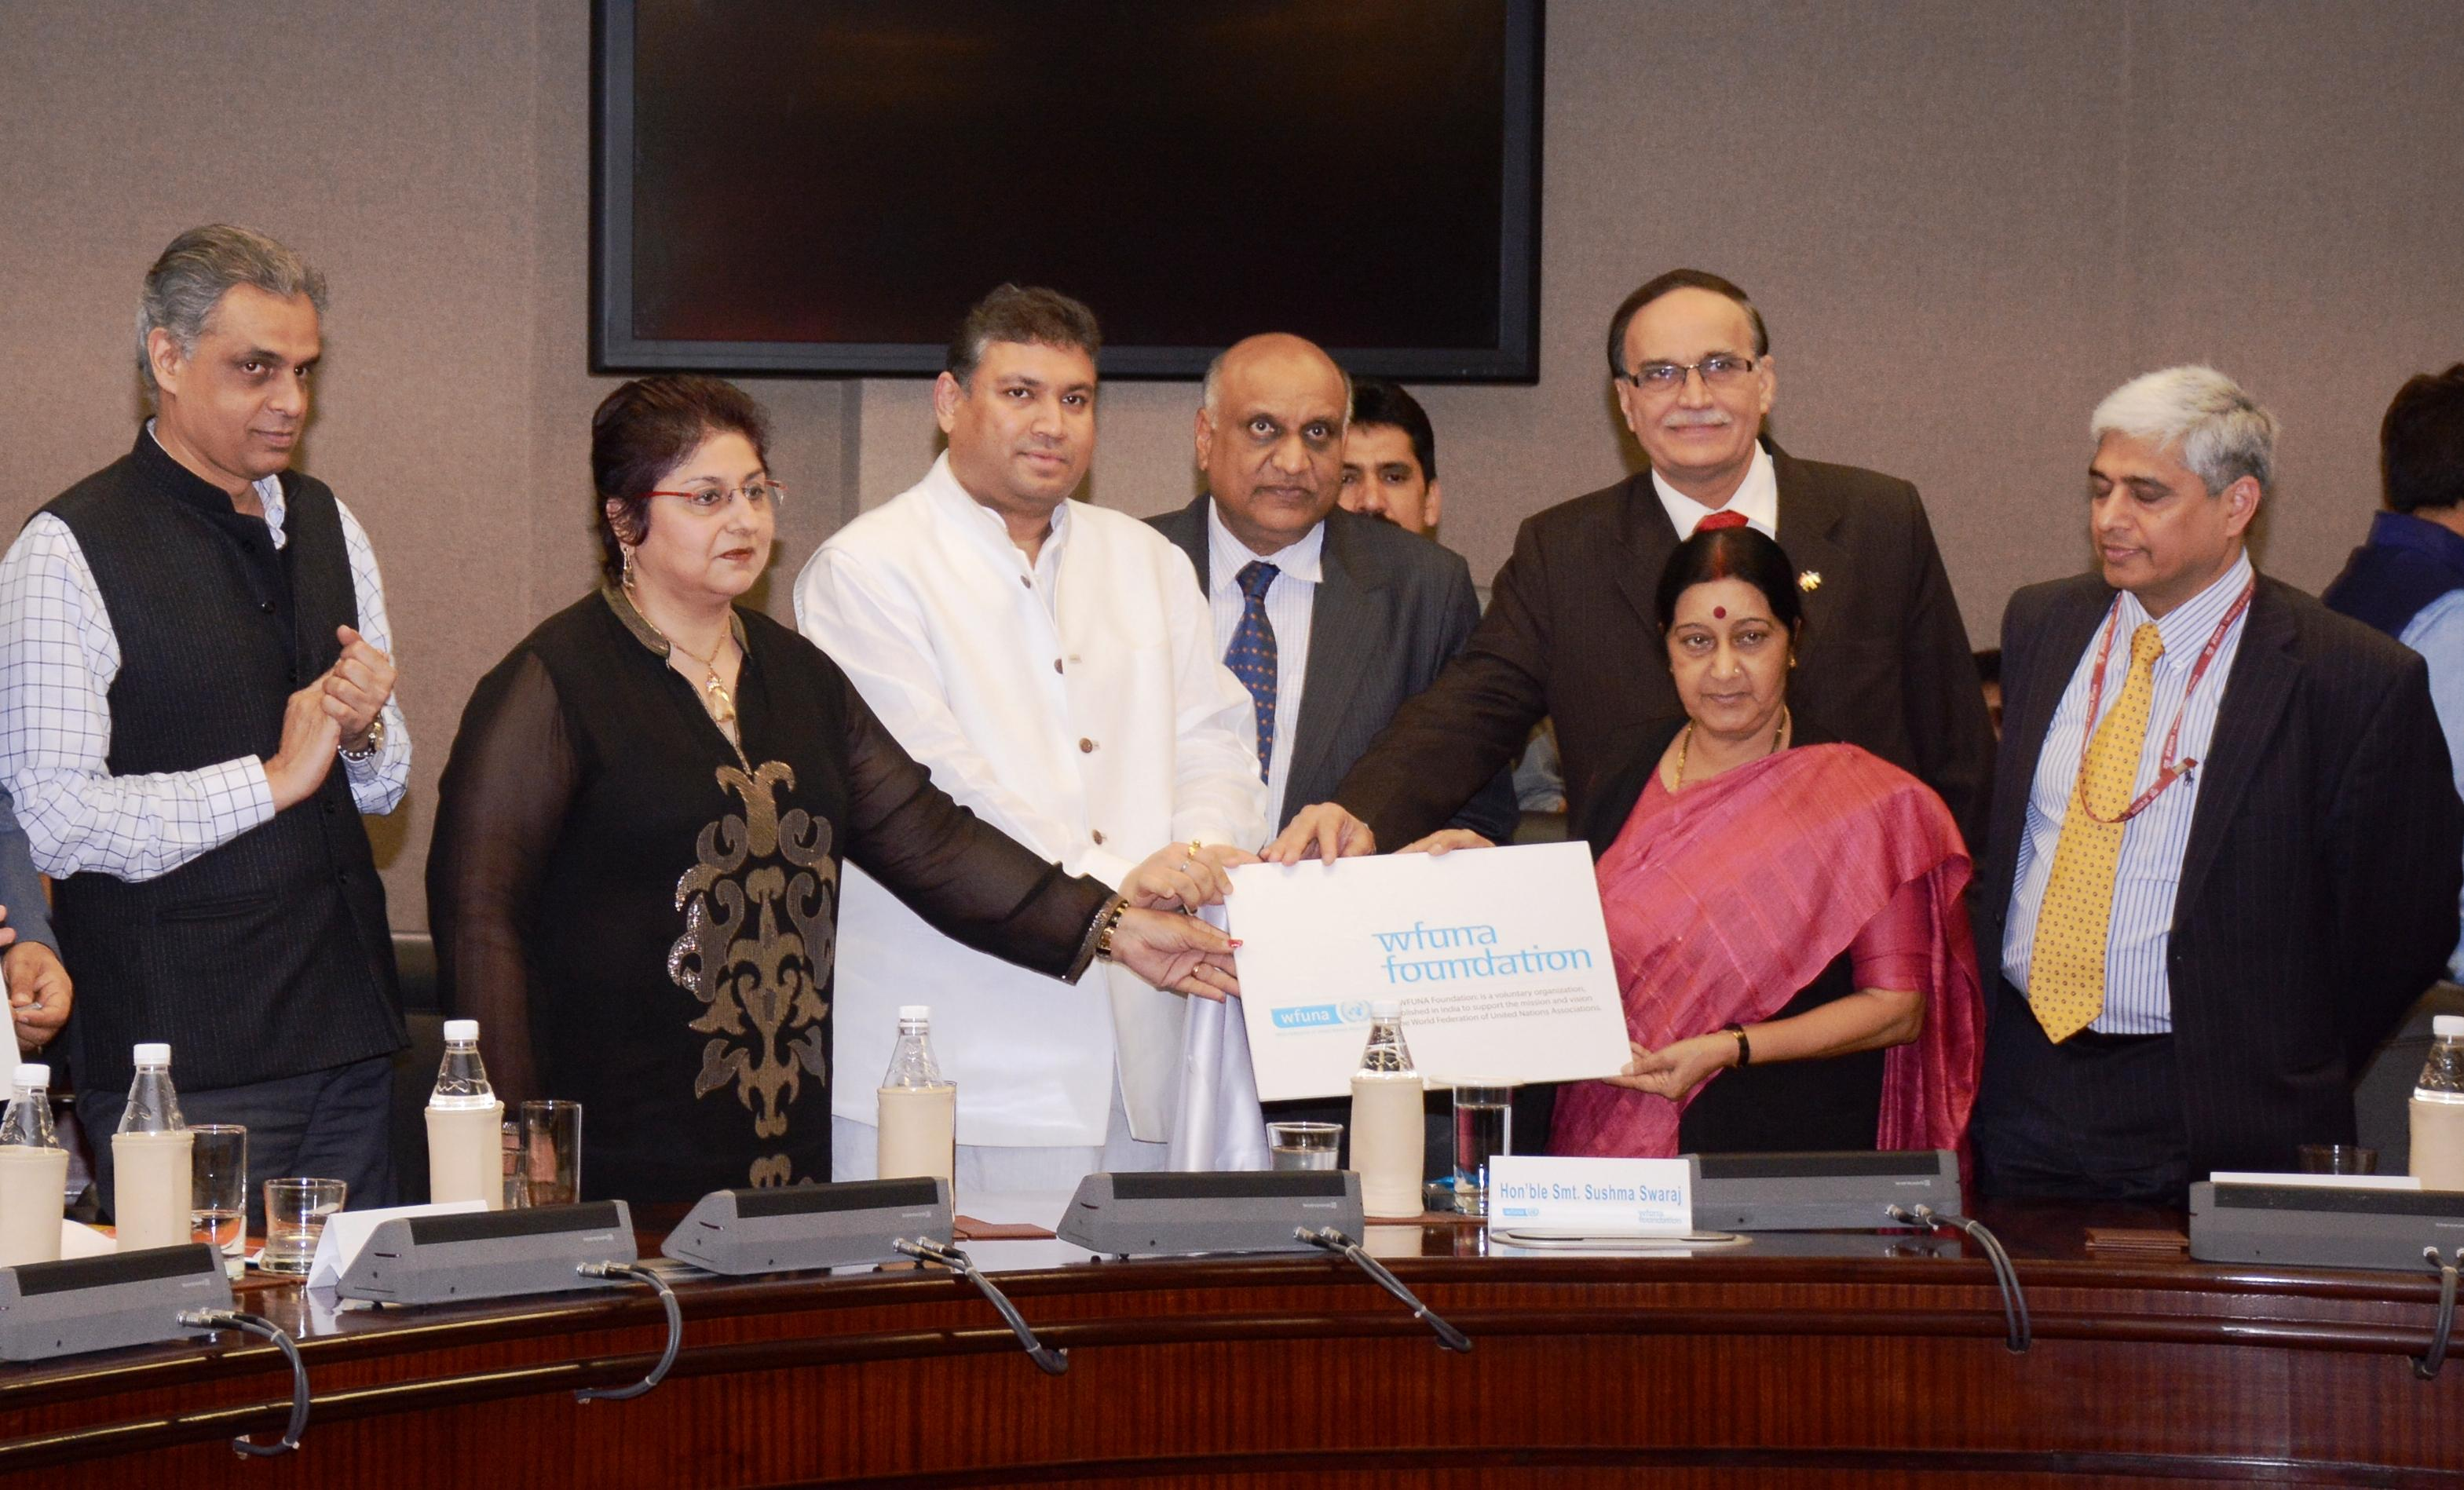 WFUNA Foundation formal launch in India on March 3, 2015.